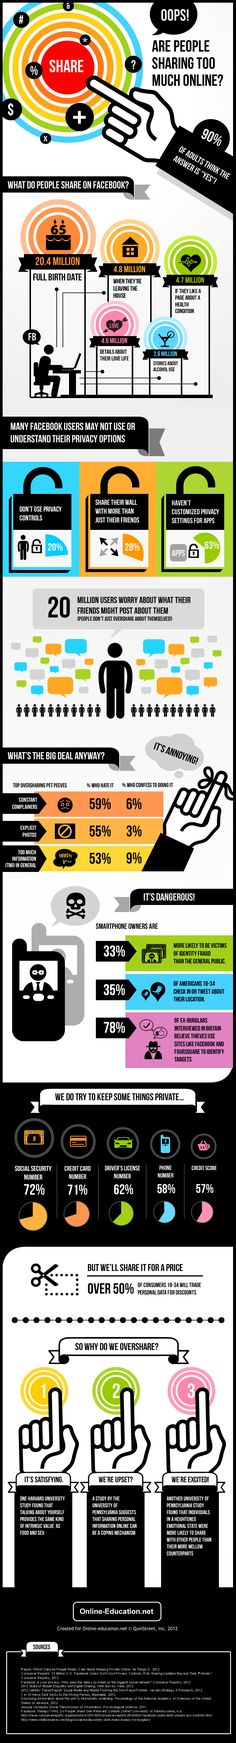 Are People Sharing Too Much On Social Media? #infographic